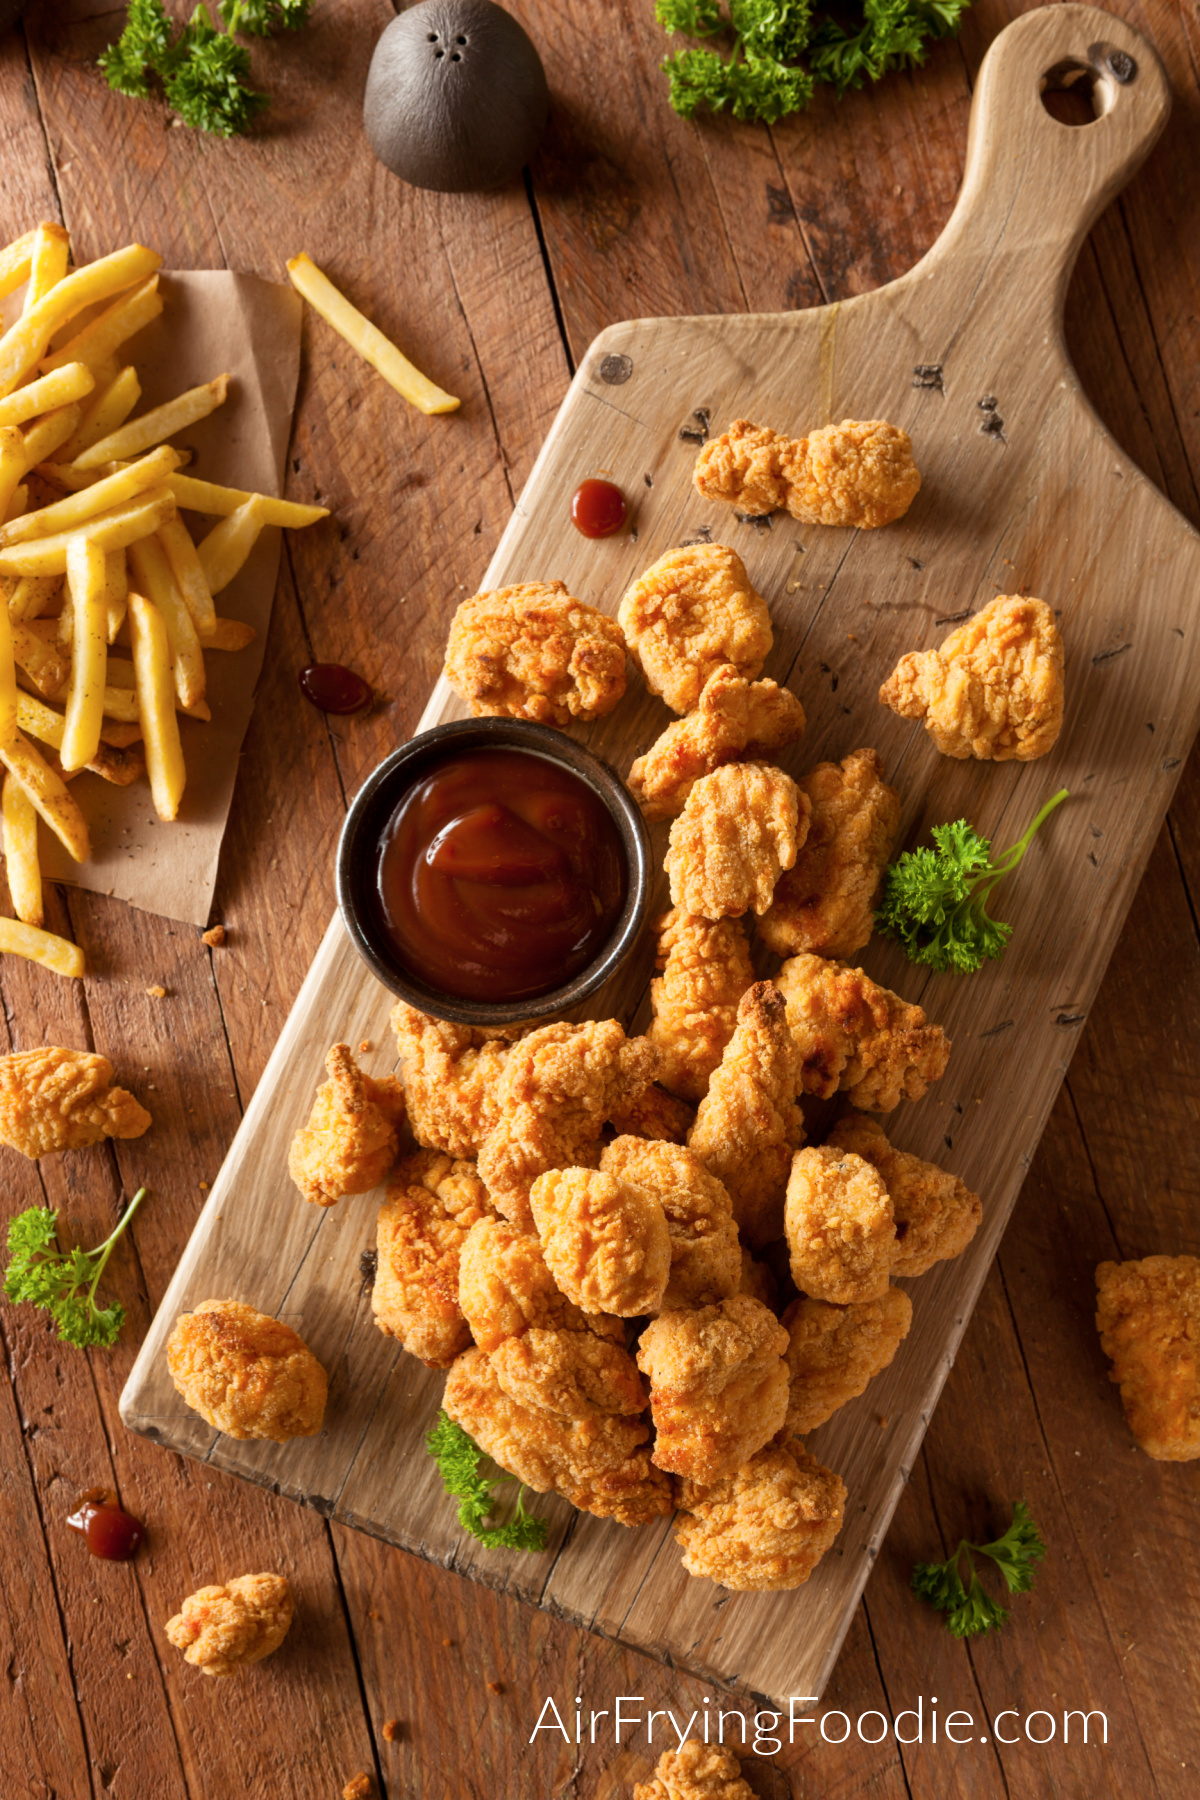 Crispy Air Fryer Chicken Bites on a cutting board served with ketchup.